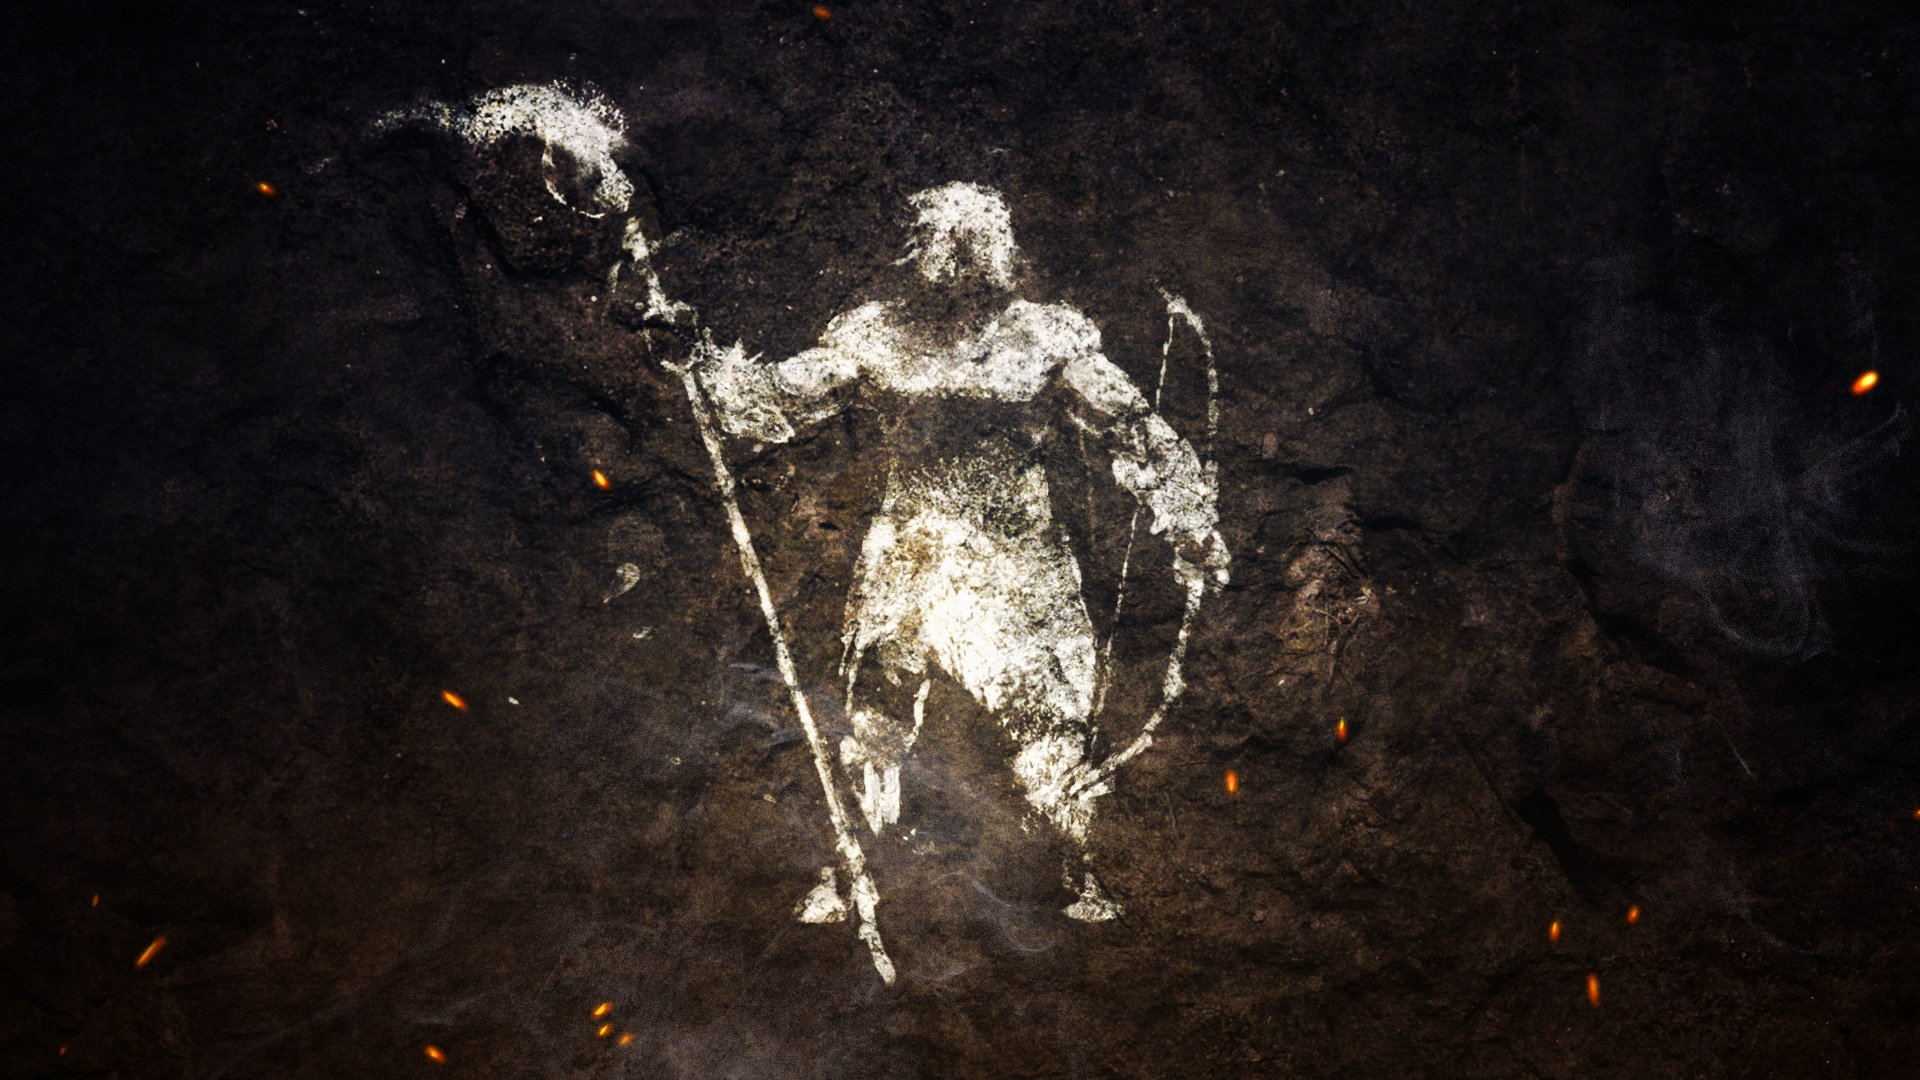 Far Cry Primal Wallpaper: Far Cry Primal Wallpapers, Pictures, Images